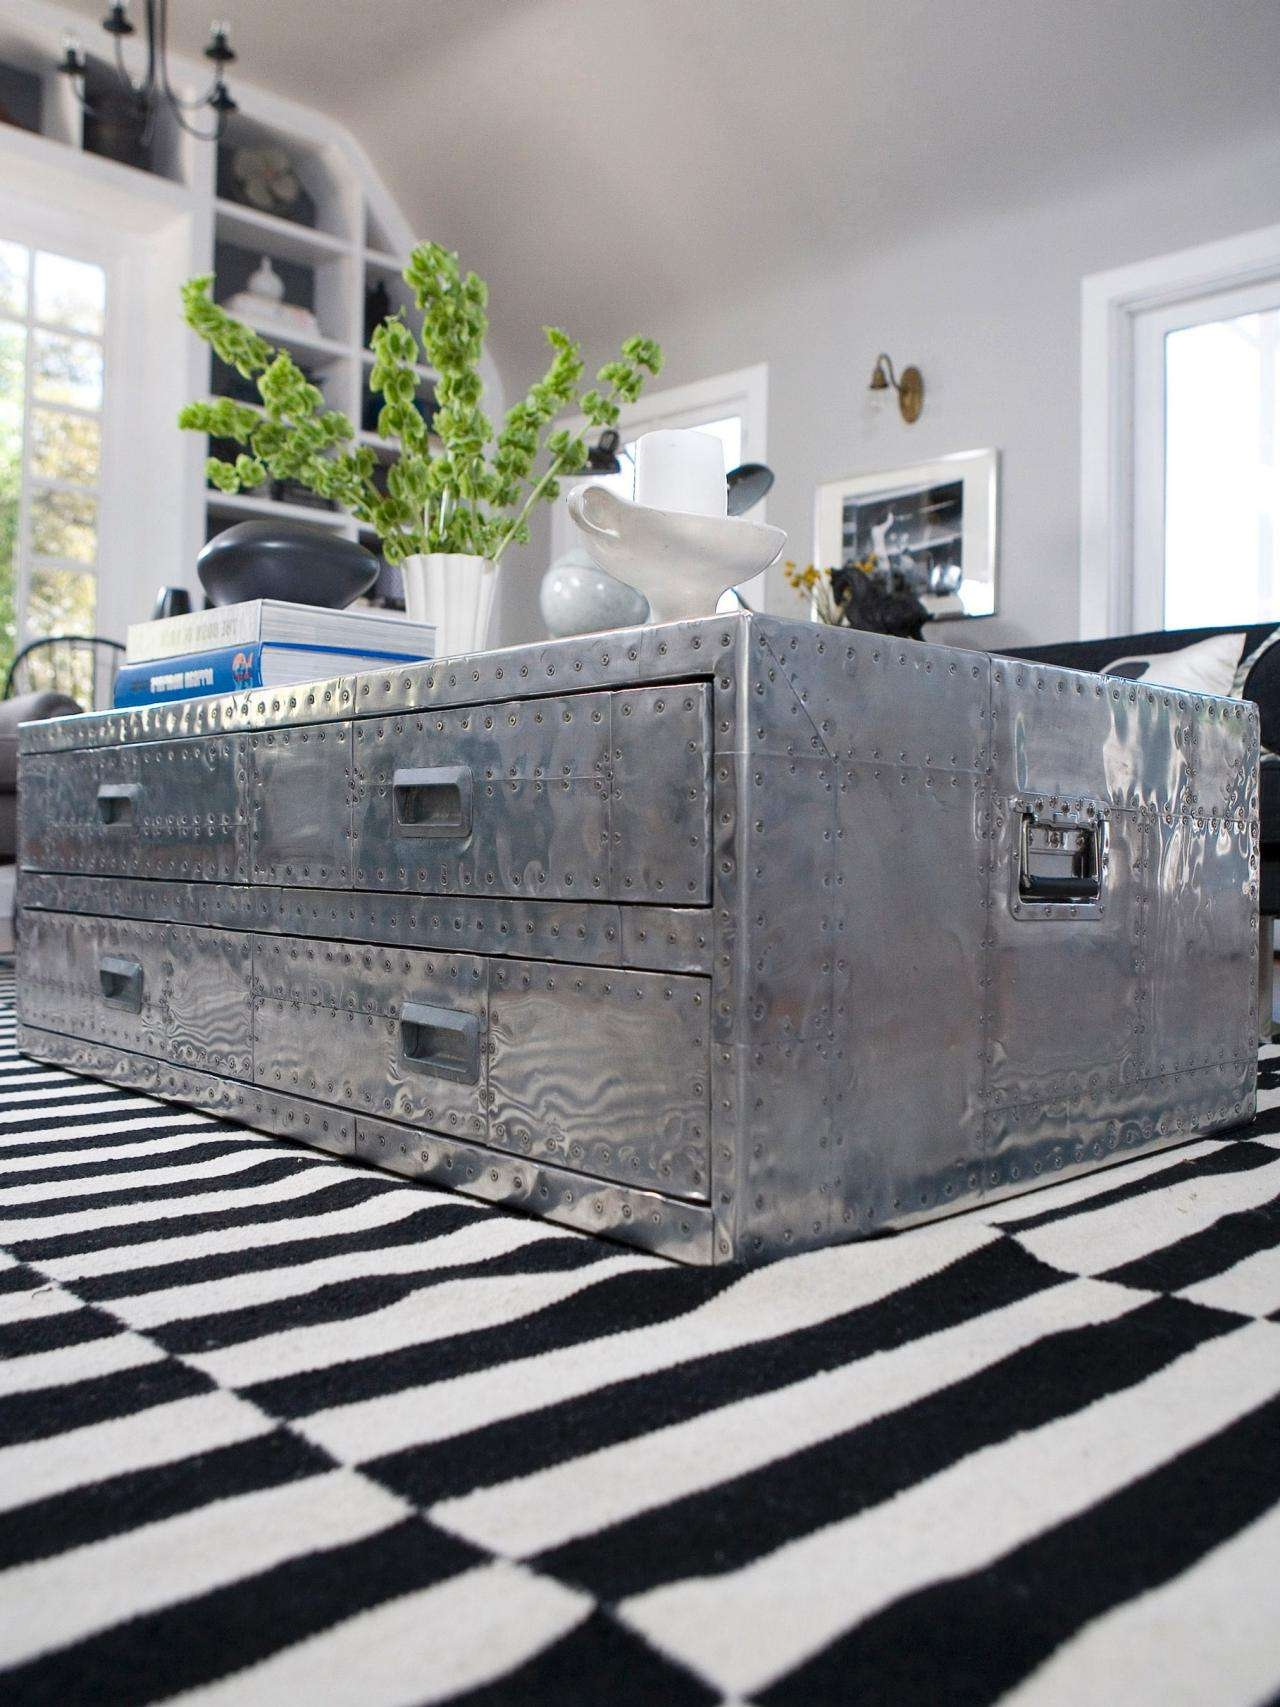 Hgtv In Well Known Stainless Steel Trunk Coffee Tables (View 8 of 20)